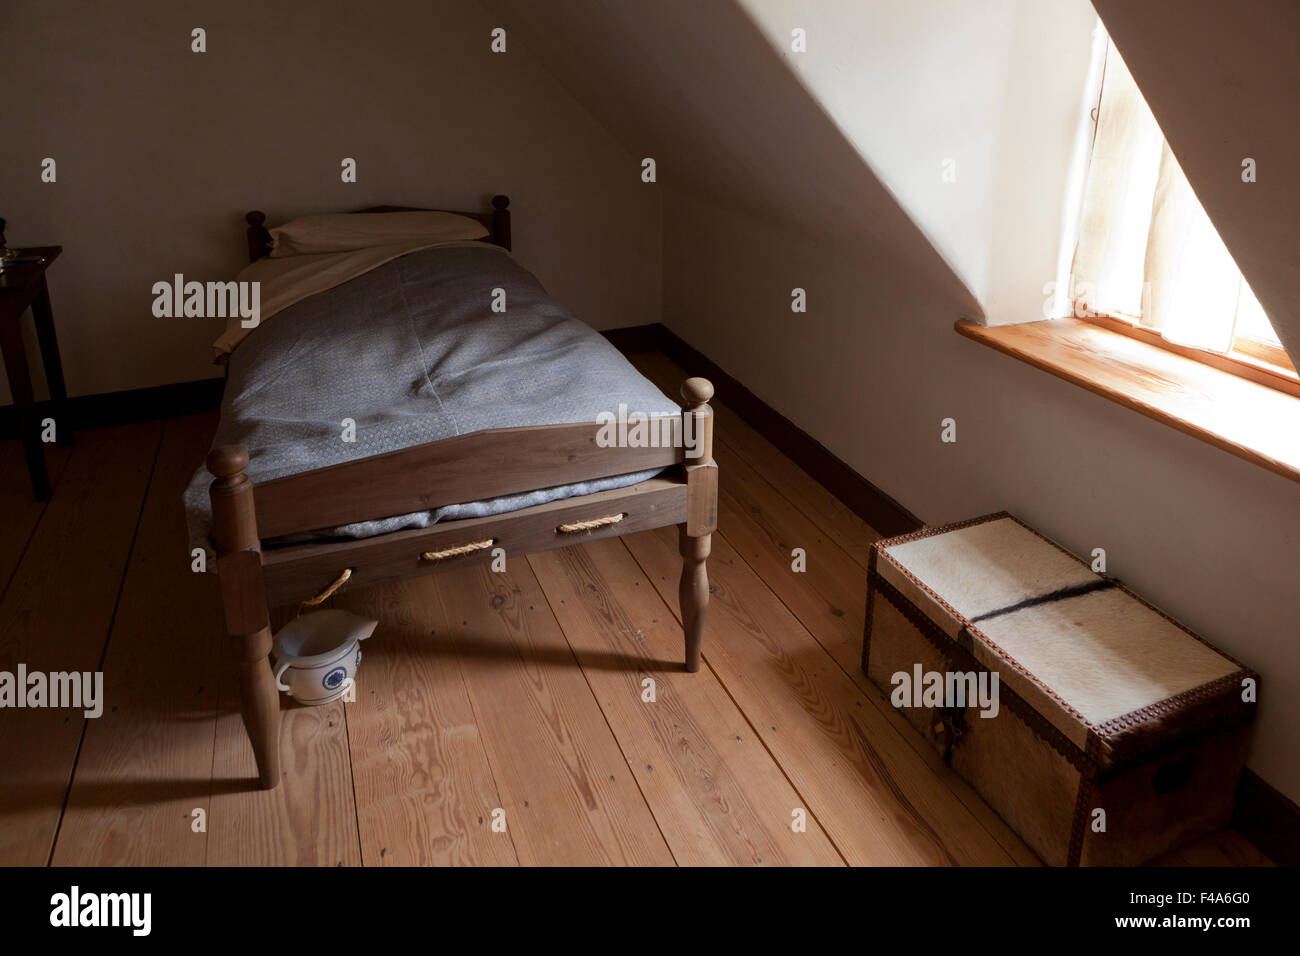 Bed in 18th century style loft bedroom - Alexandria, Virginia USA - Stock Image